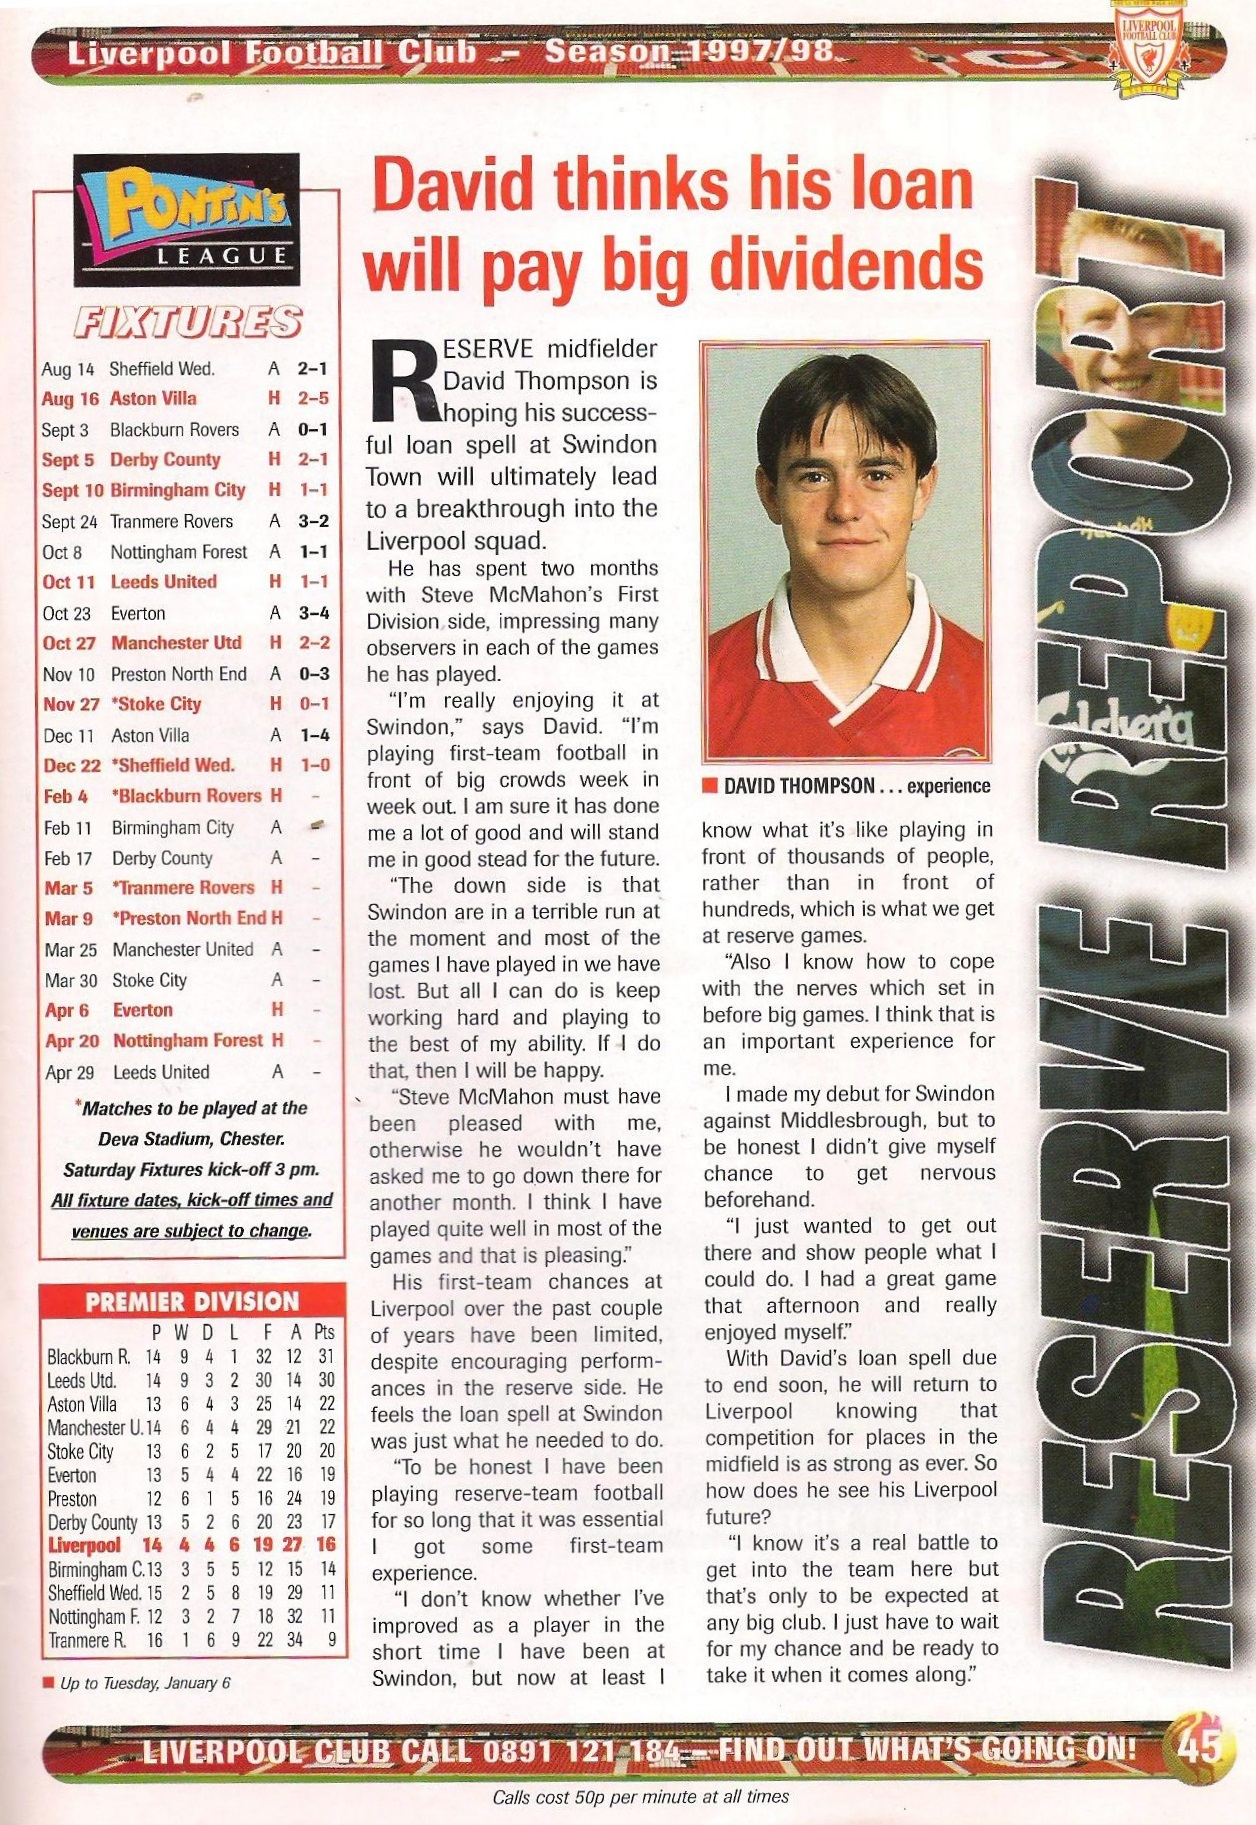 David thinks his Swindon loan will pay big dividends - 1997/98